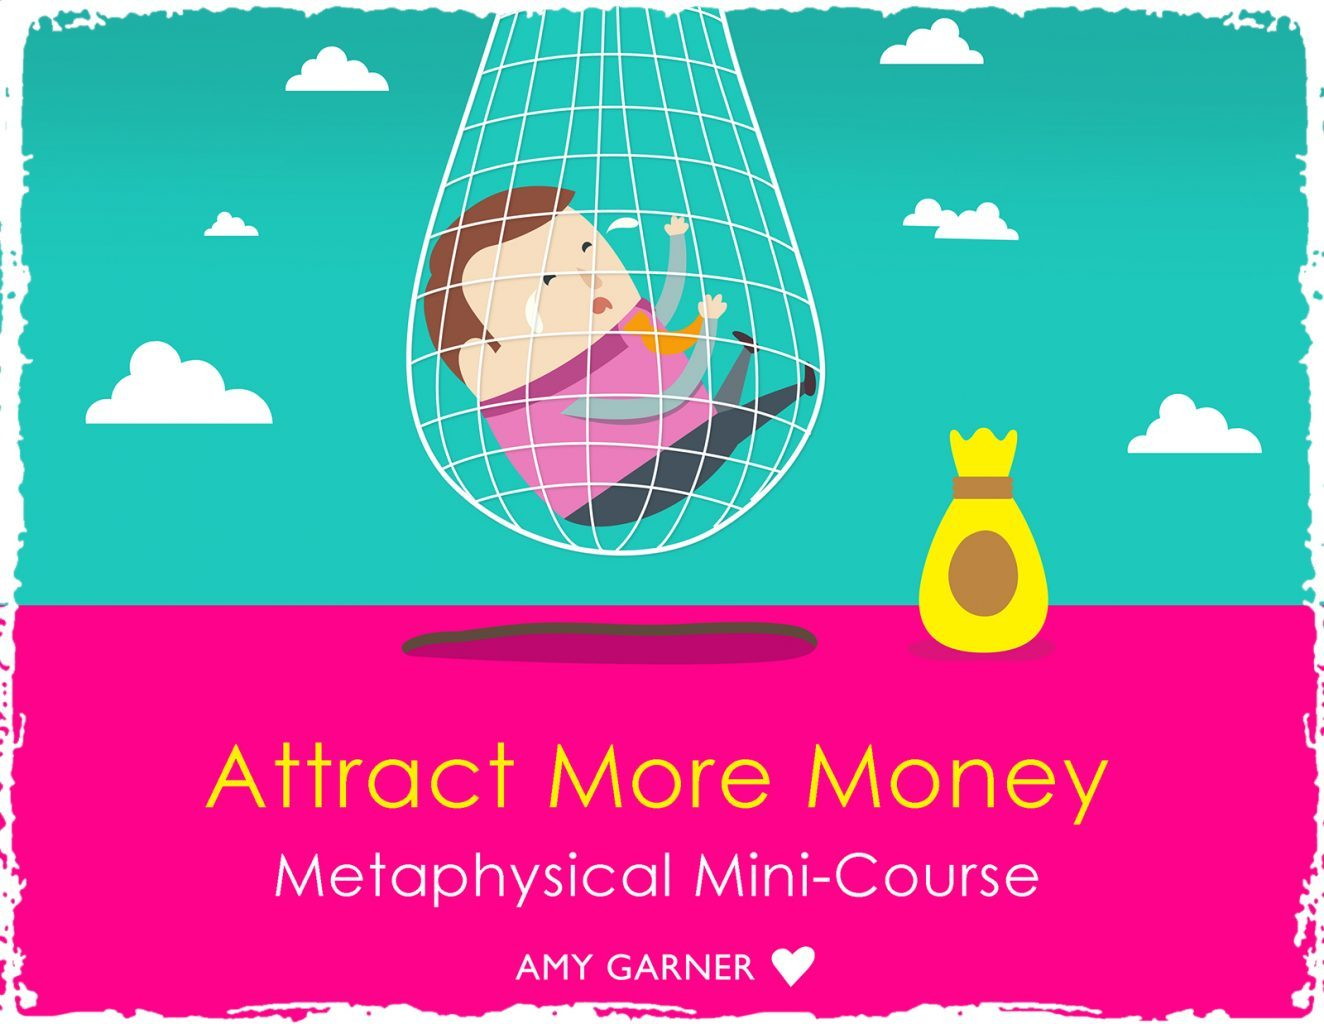 Attract more money image showing man in a financial net